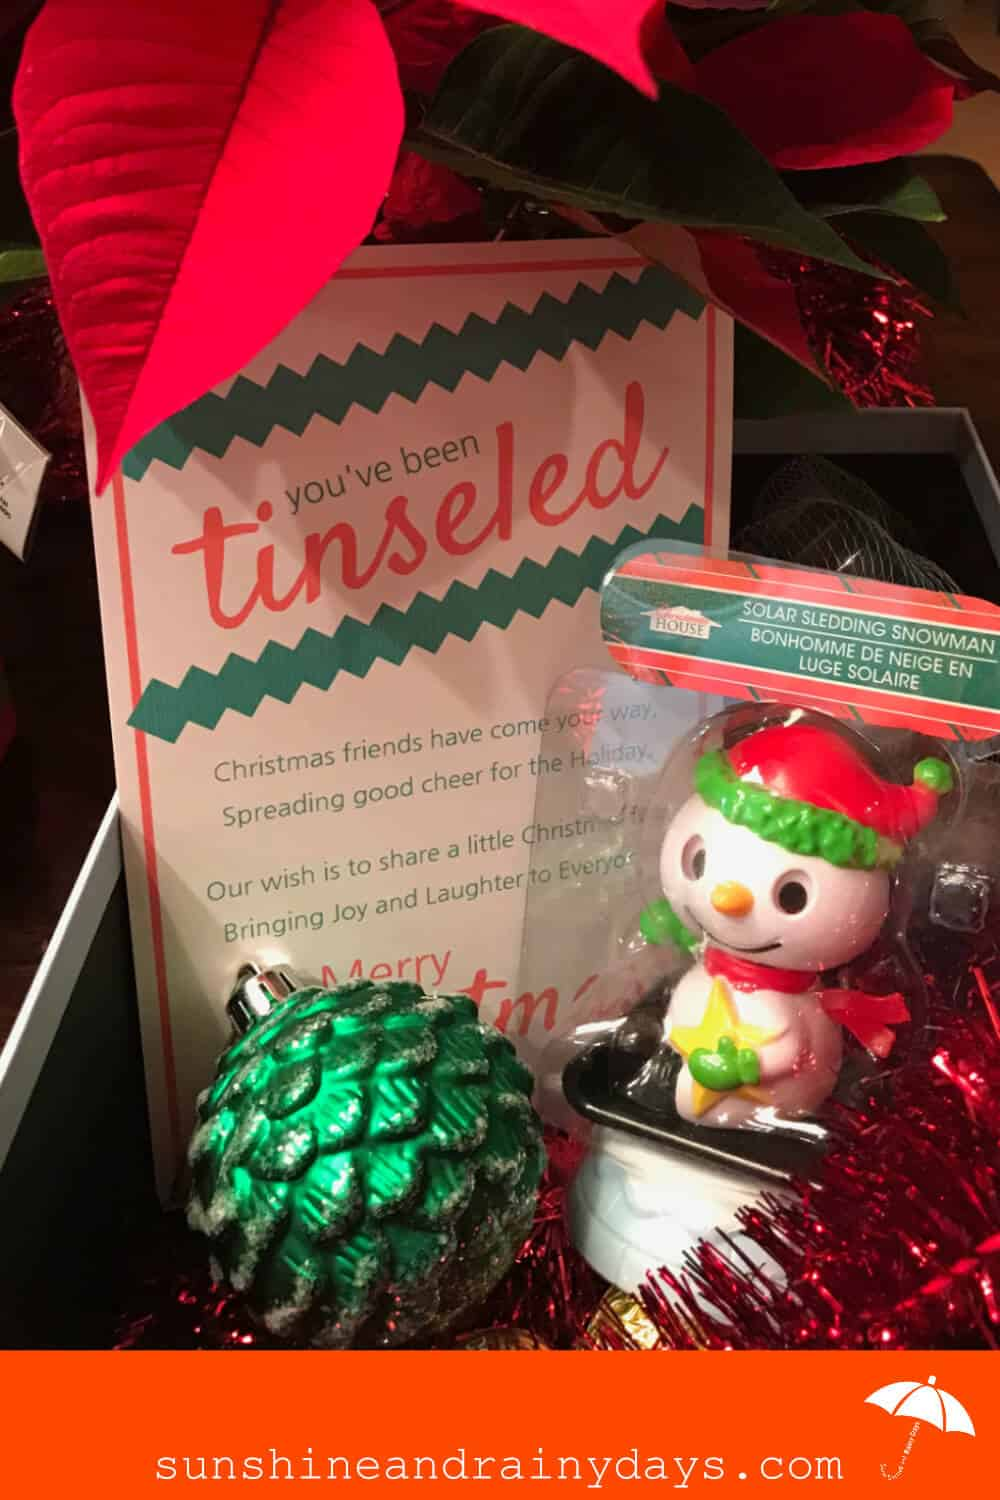 Looking for a way to bring Christmas cheer? Let us show you How To Tinsel Neighbors using our You've Been Tinseled Printable! #tinseled #youvebeentinseled #ChristmasPrintable